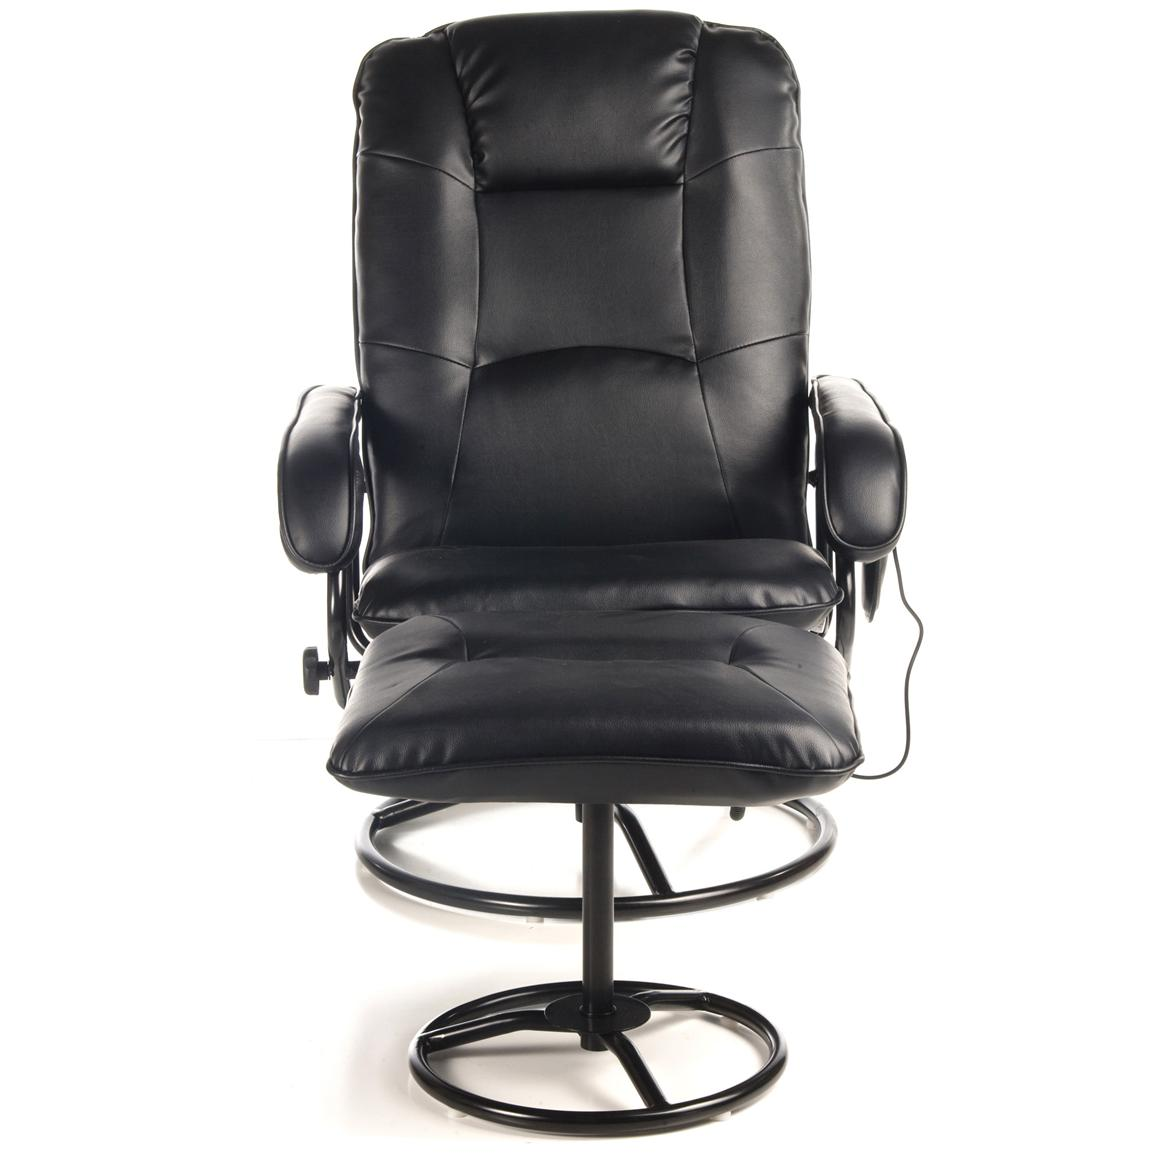 Comfort Products Leisure Recliner with 10-Motor Massage and Heat, Front